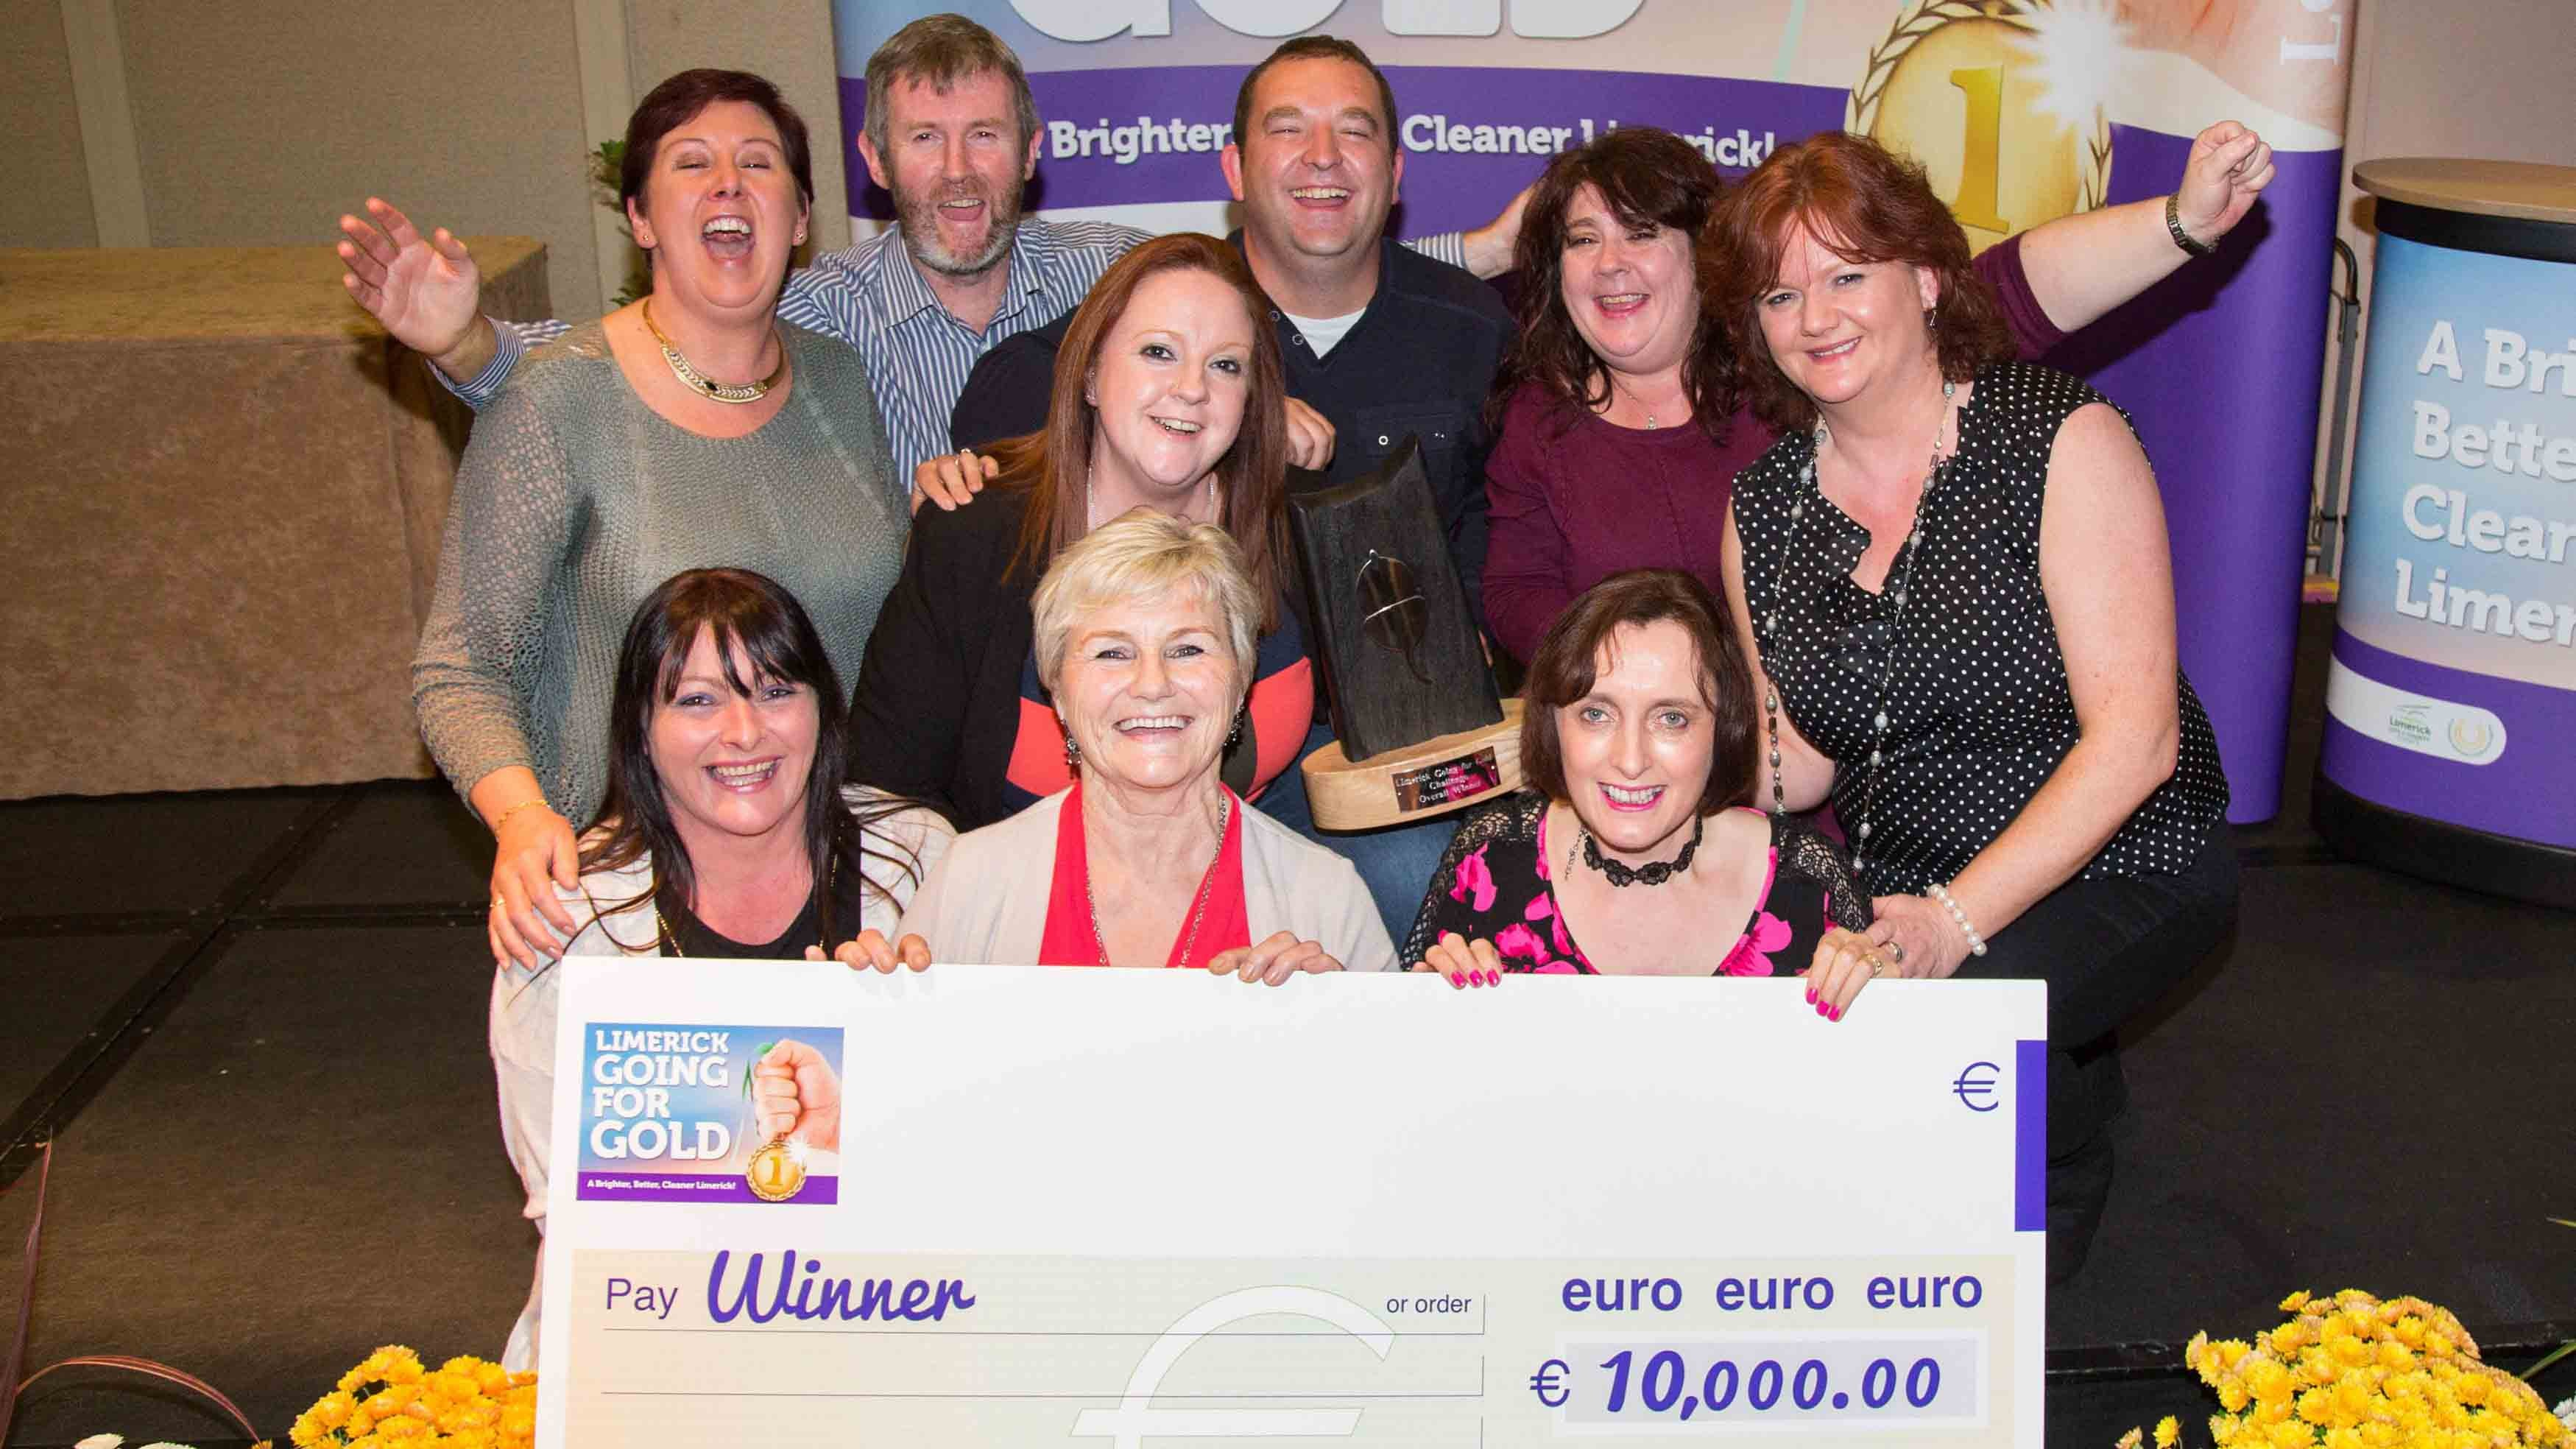 Castleconnell named as overall winner of the Limerick Going for Gold competition 2015